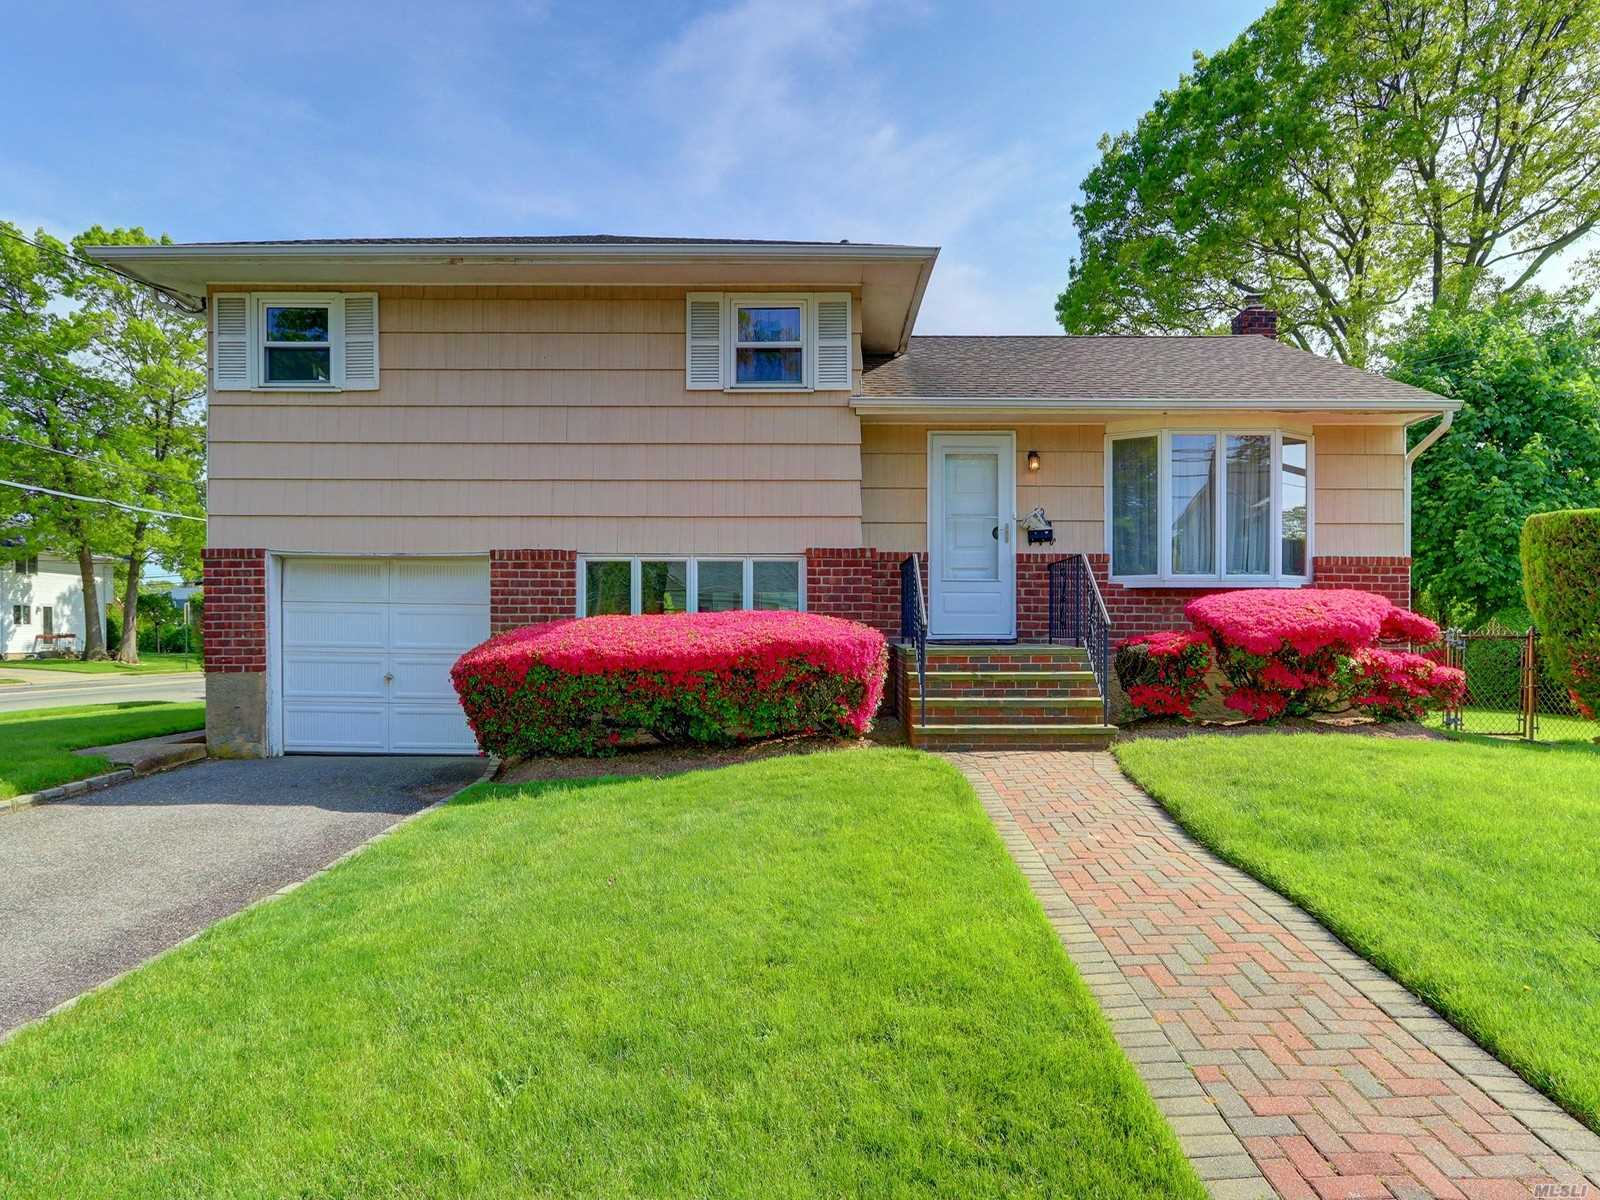 Great Opportunity To Live In The Desired Village of Massapequa Park! Community Offers Walking Distance To The LIRR, Village Stores & Restaurants, Brady Park & Massapequa Preserve/ Bike Trail, This 3 Bdrm, 1.5 Bth Split Level Style Home Features: Newer Roof & H/W/H (7 yrs old), Some Updated Windows, Hardwood Flrs, In-Ground Sprinklers (7 Zones), Gas Heat & Renowned Massapequa Schools, Use Your Own Personal Touches To Make This Your Dream Home! Call Today For A Private Showing!!!